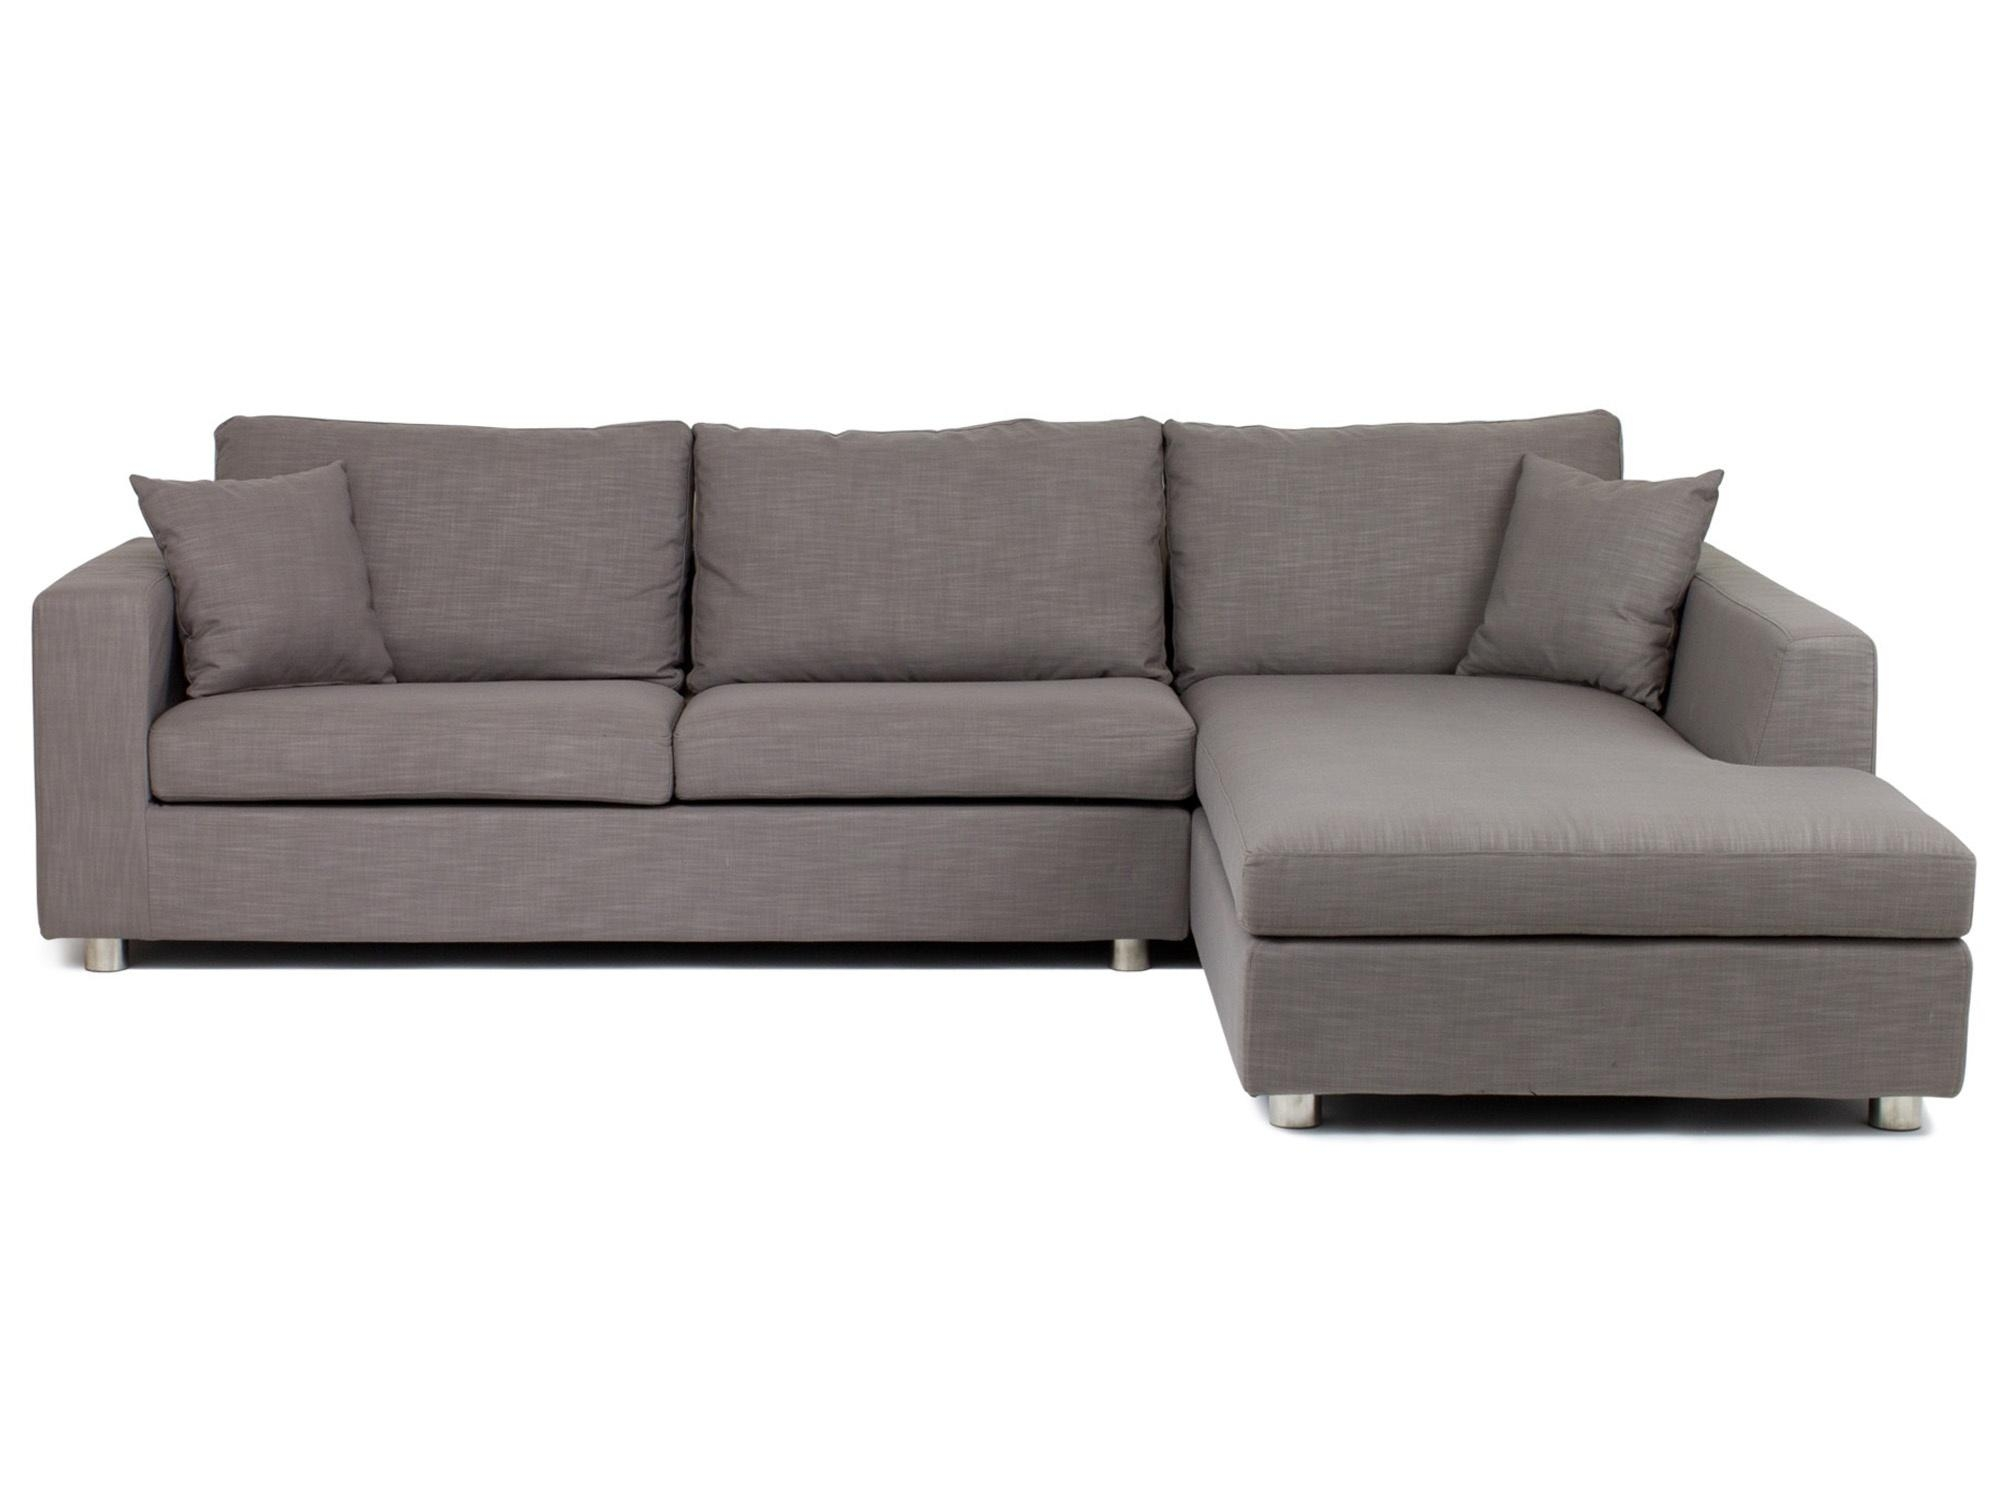 20 top corner sofa bed with storage ikea sofa ideas for Ikea corner sofa